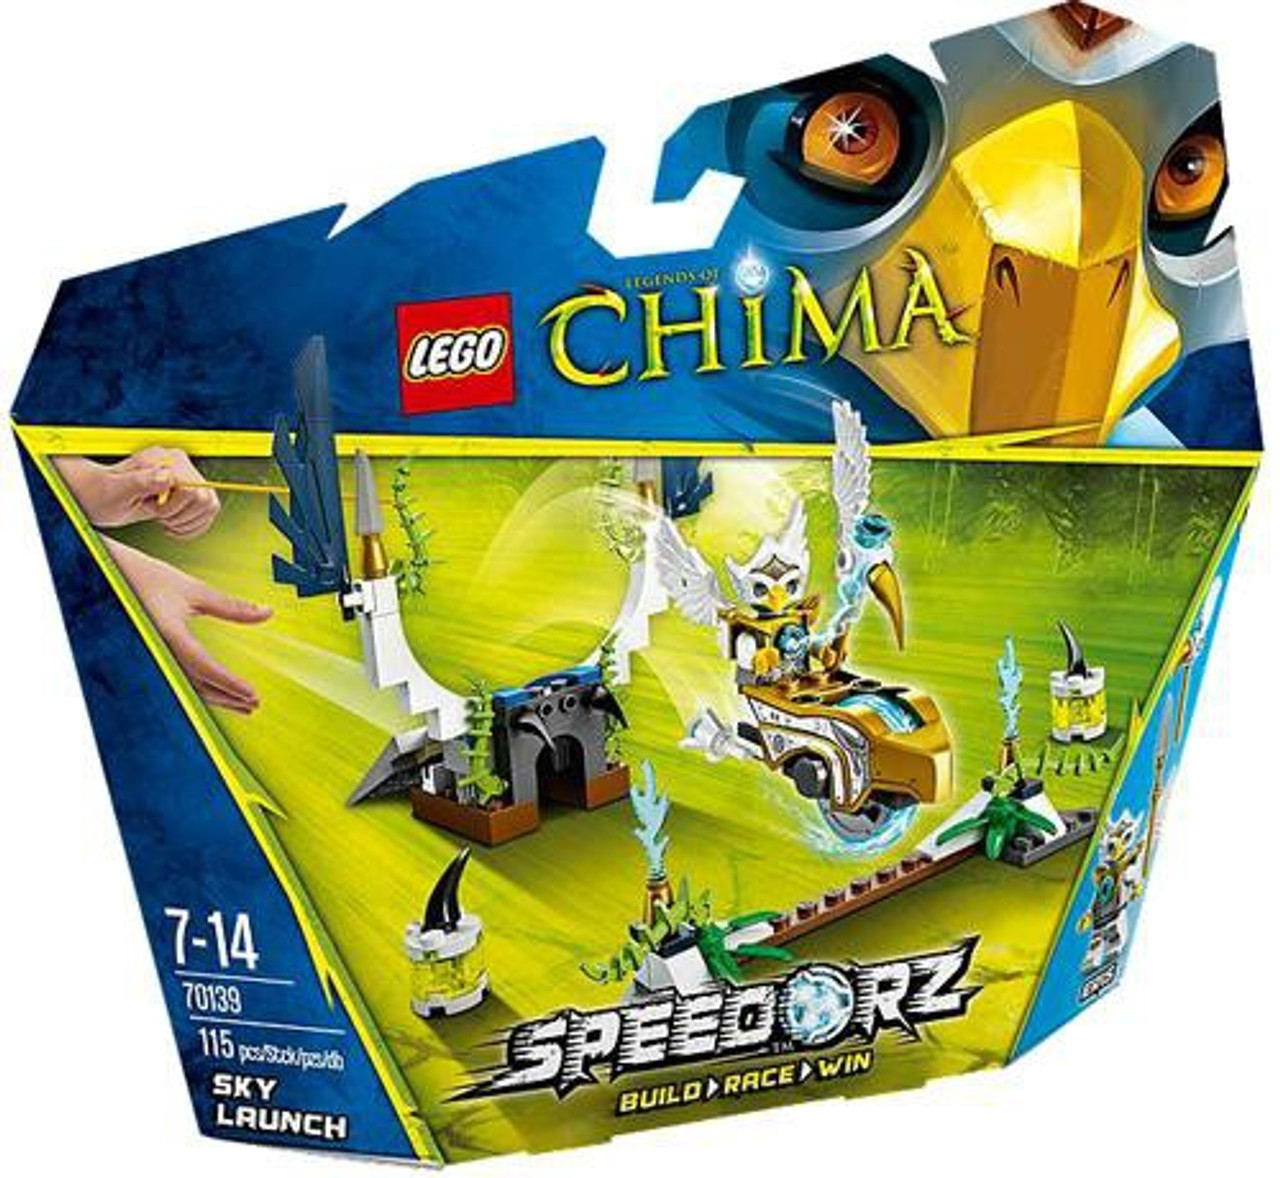 LEGO Legends of Chima Sky Launch Set #70139